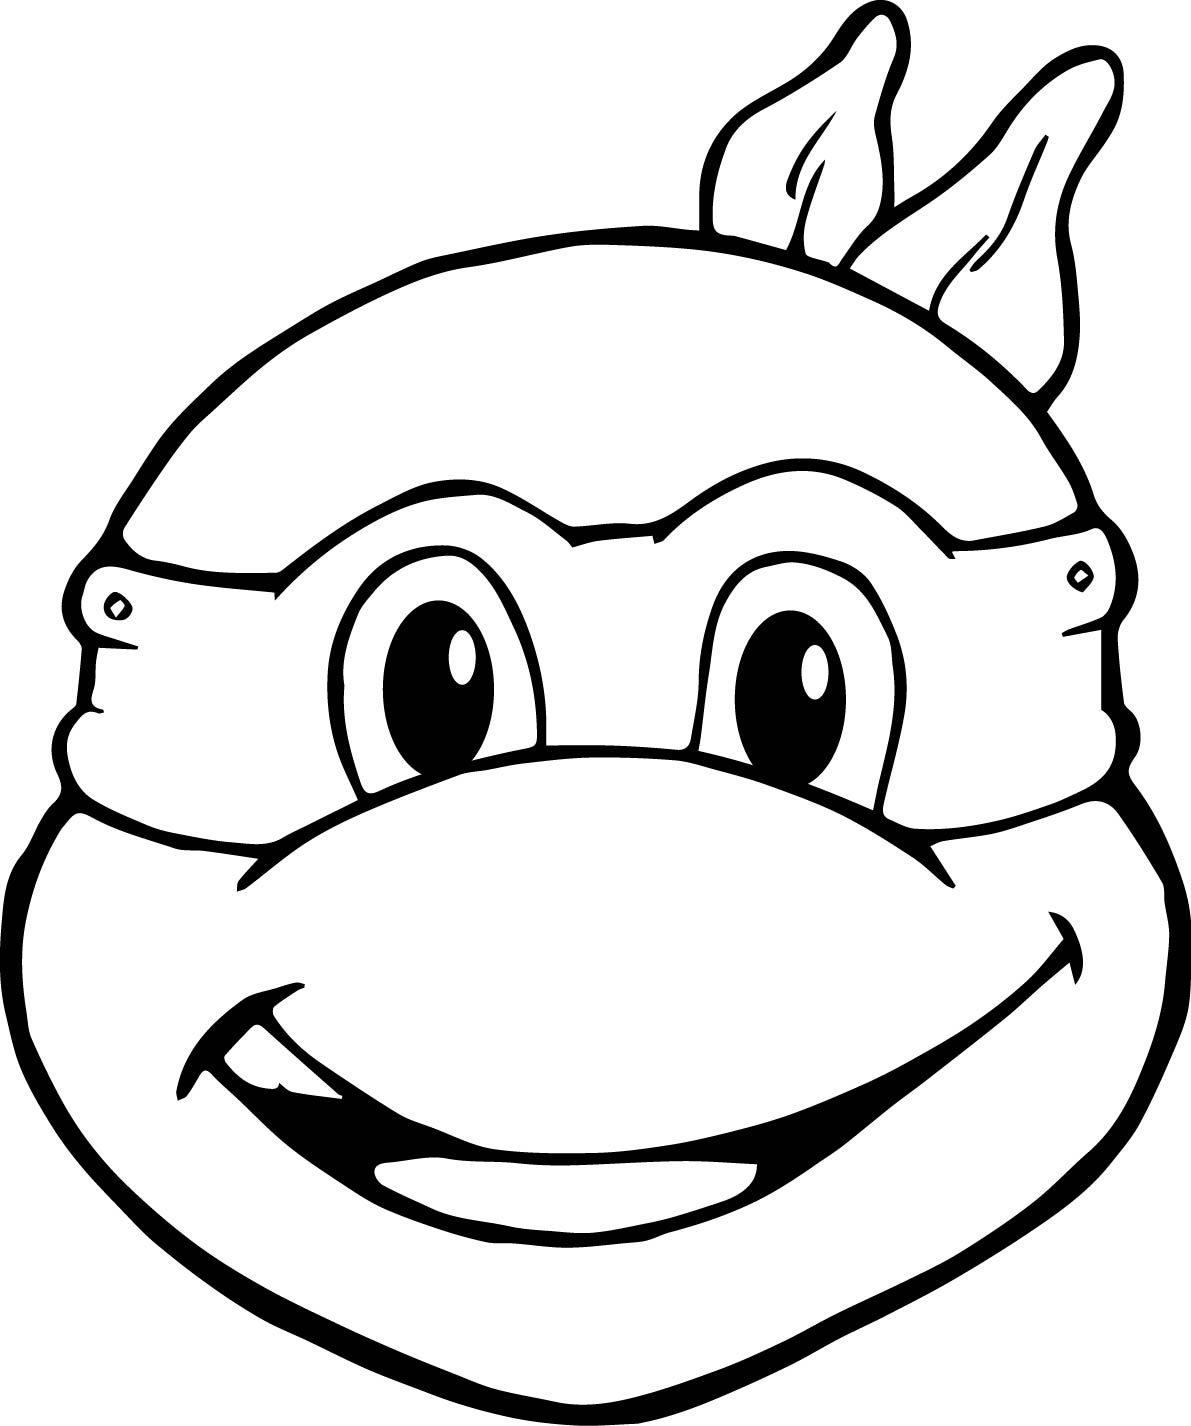 ninja turtles coloring pages head to head wecoloringpage - Ninja Turtle Coloring Pages Free